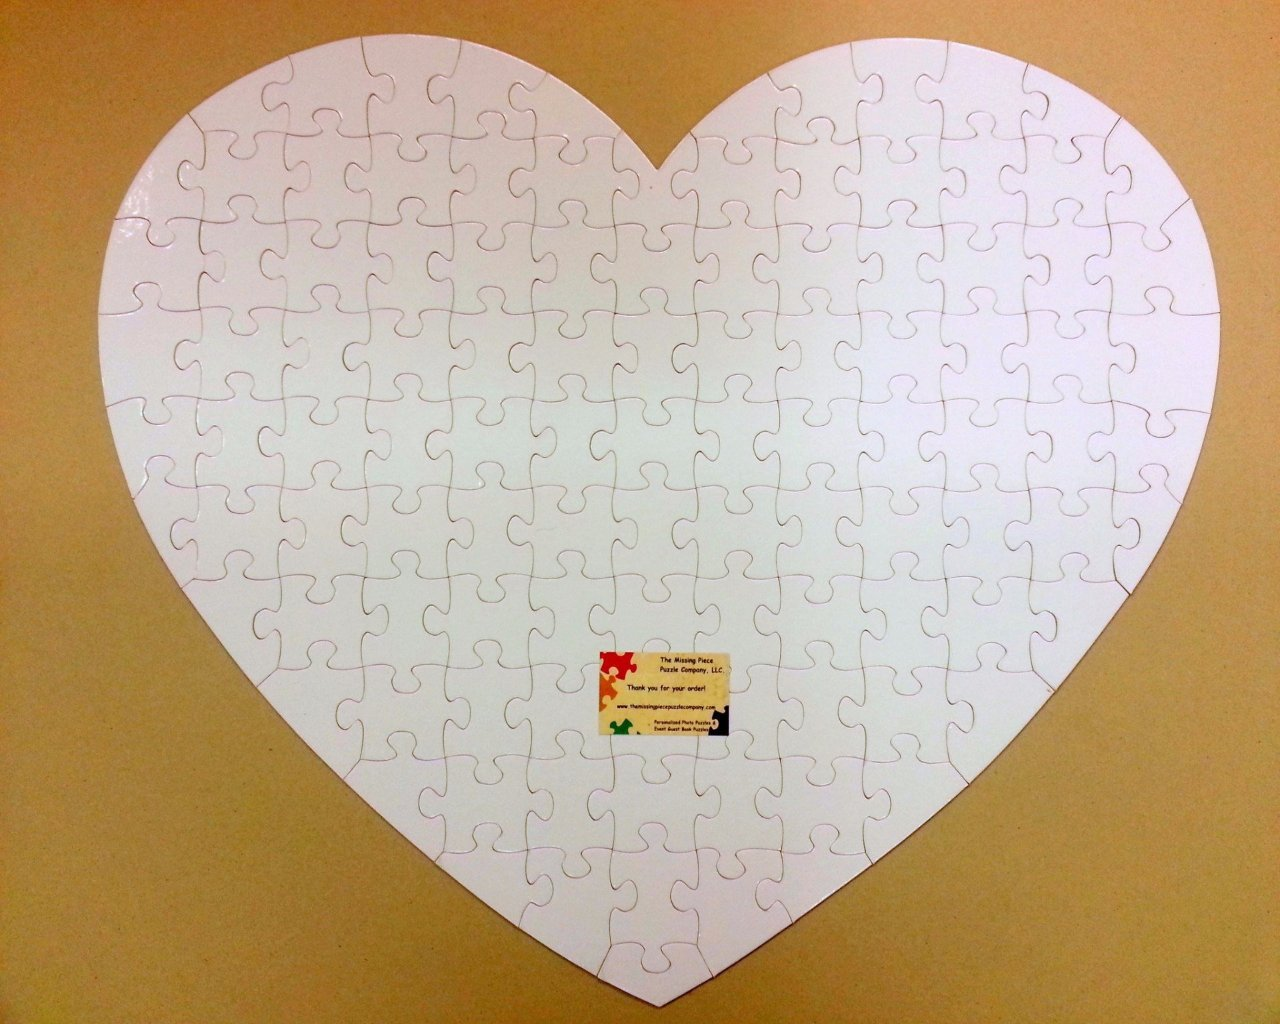 Giant Heart Guest Book Puzzle with 108 White Extra Large Puzzle ...